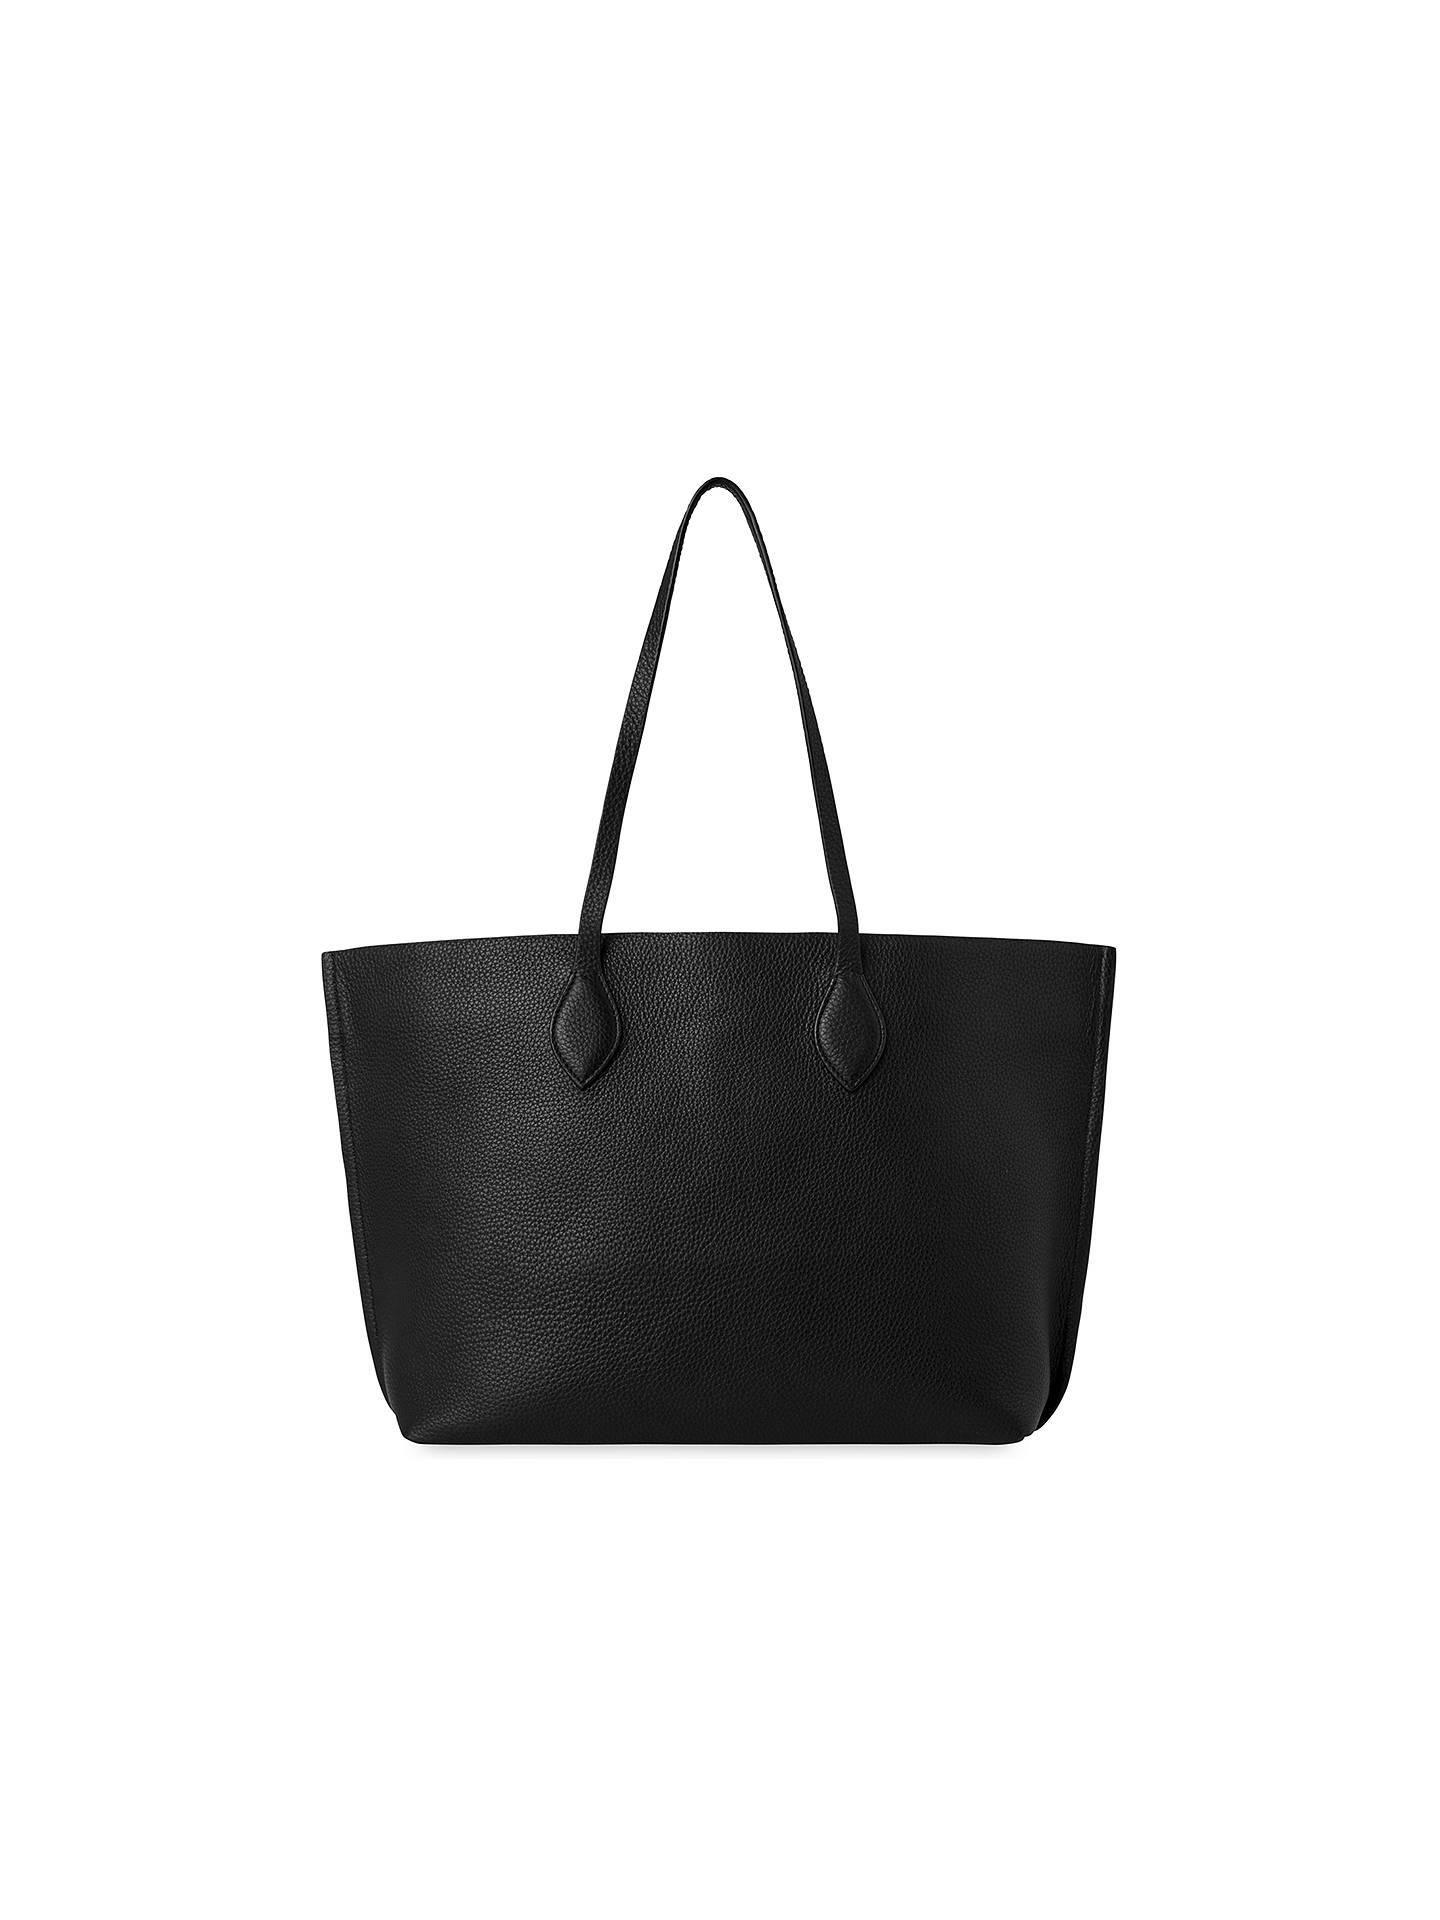 BuyWhistles Regent Soft Leather Tote Bag, Black Online at johnlewis.com